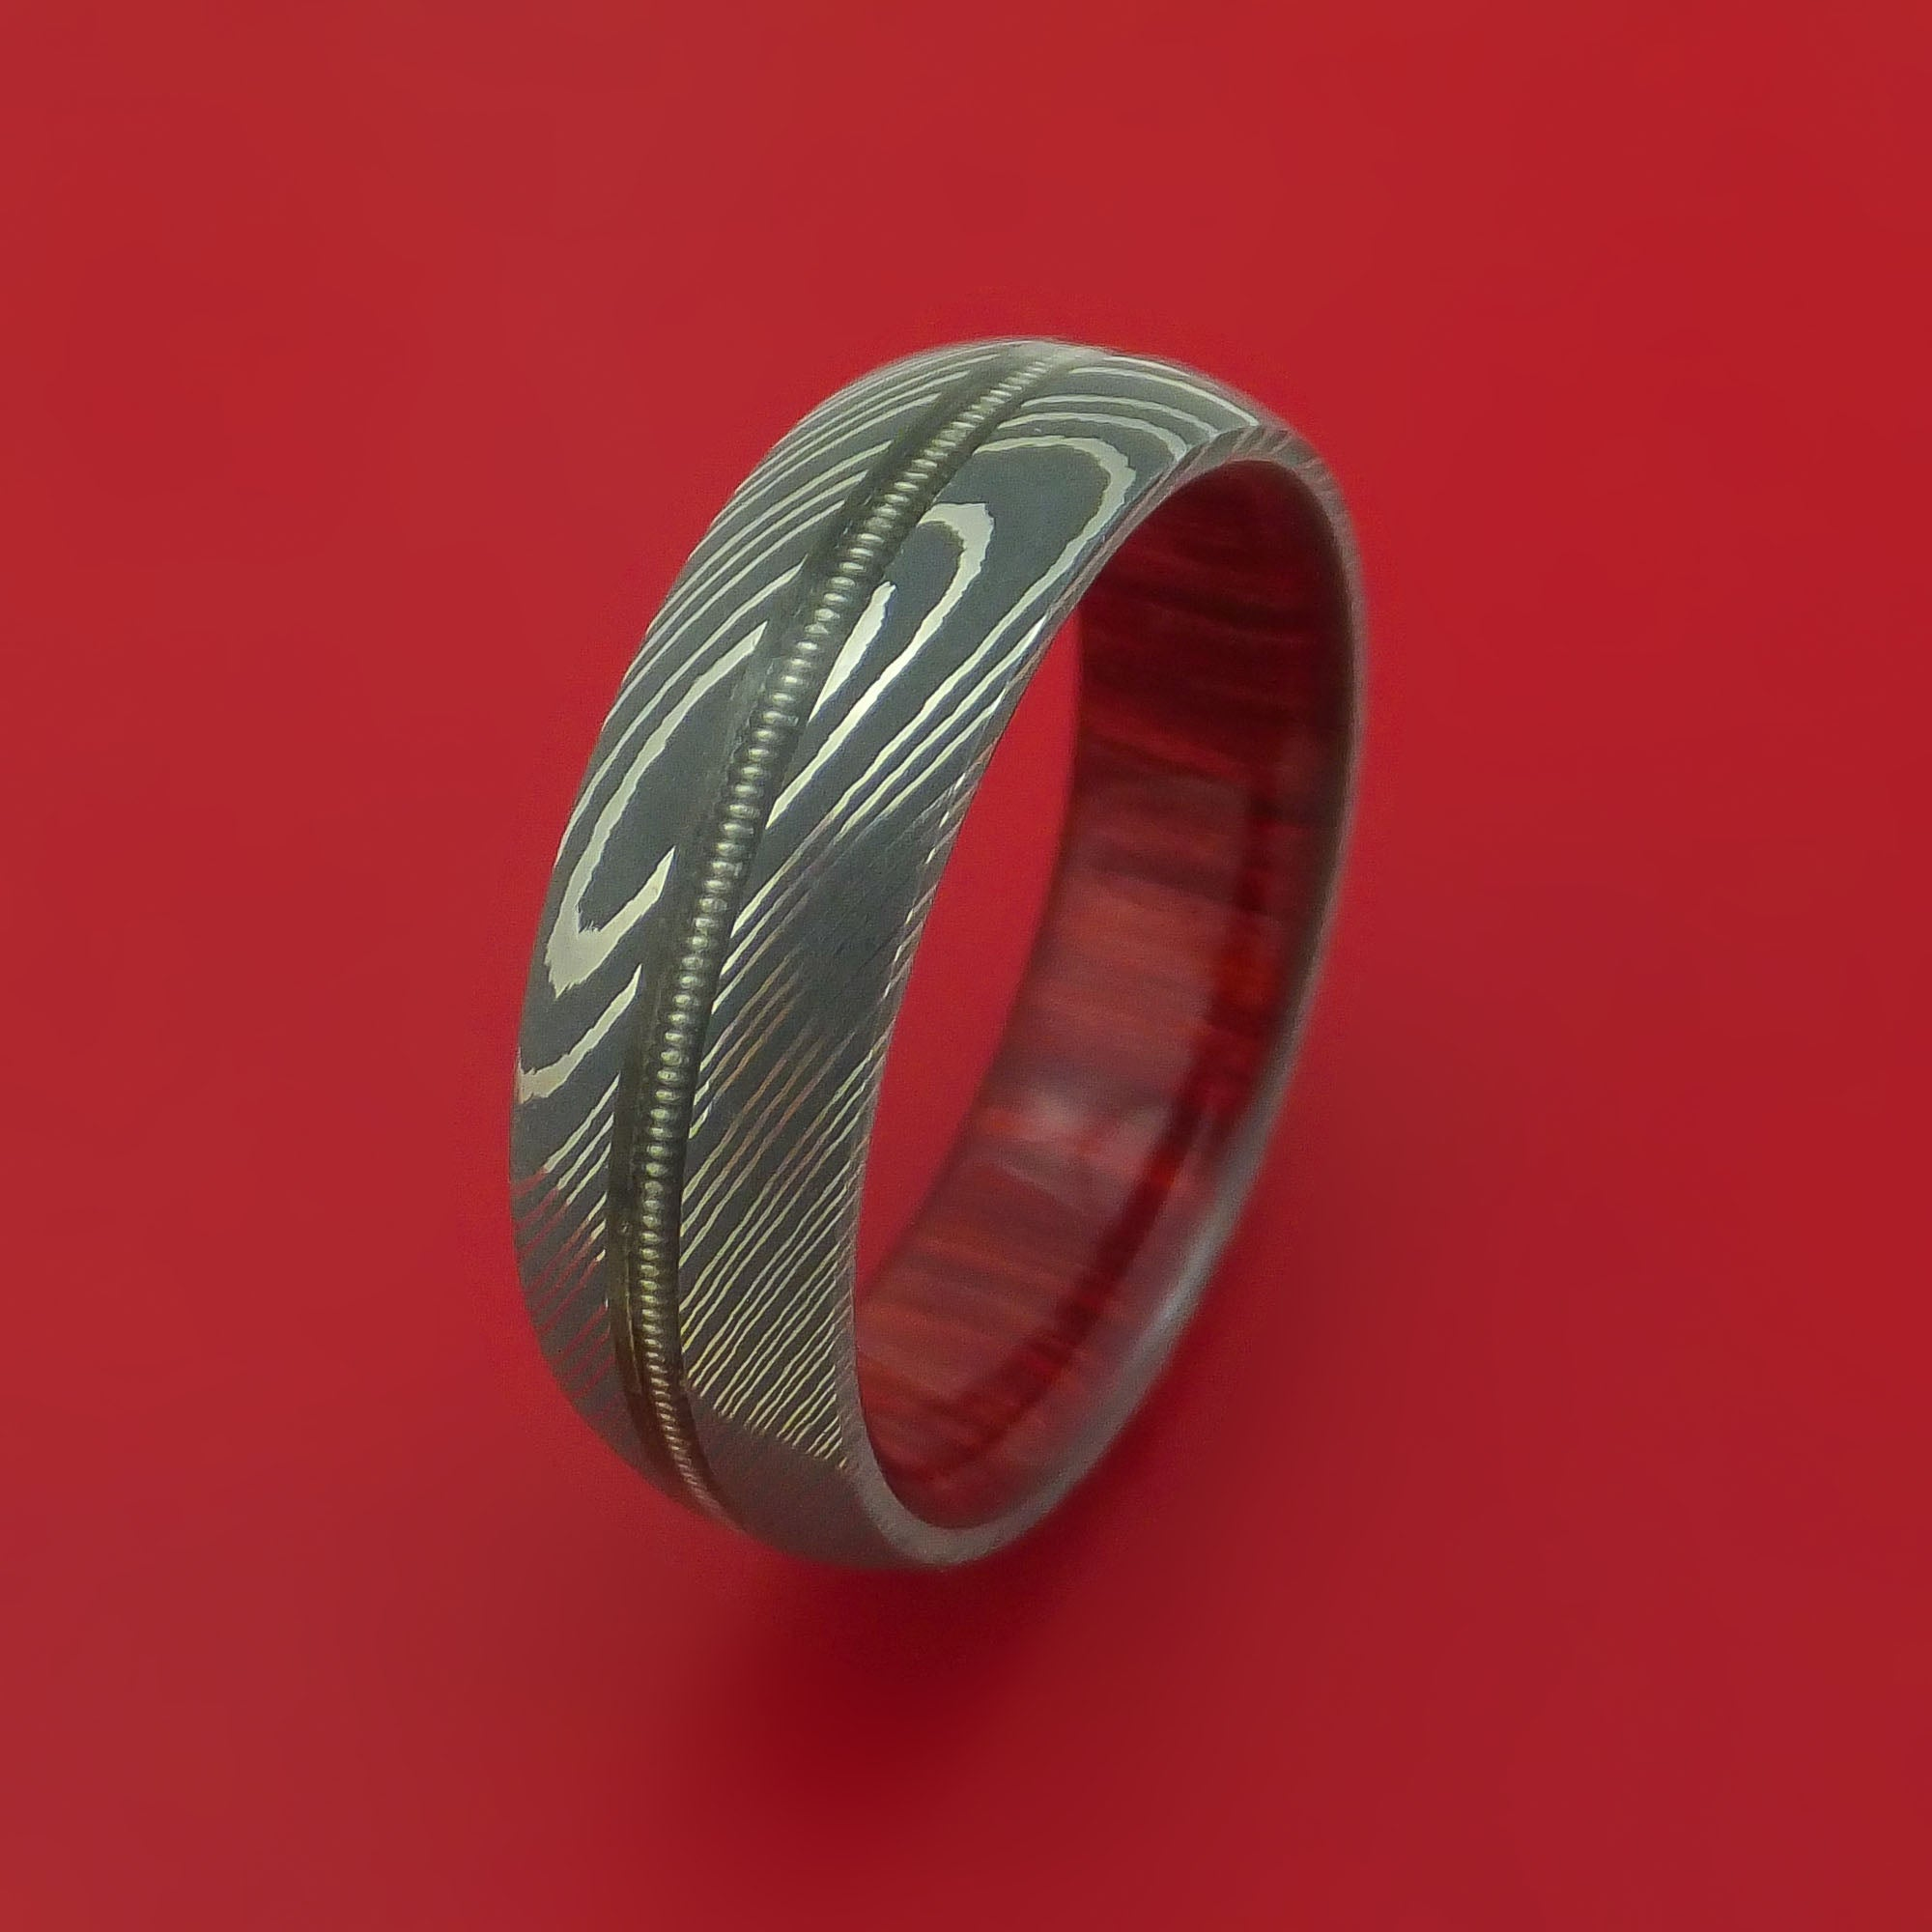 Damascus Steel Ring With Nickelwound Guitar String Inlay And Interior Hardwood Sleeve Custom Made: Red String Wedding Rings At Reisefeber.org